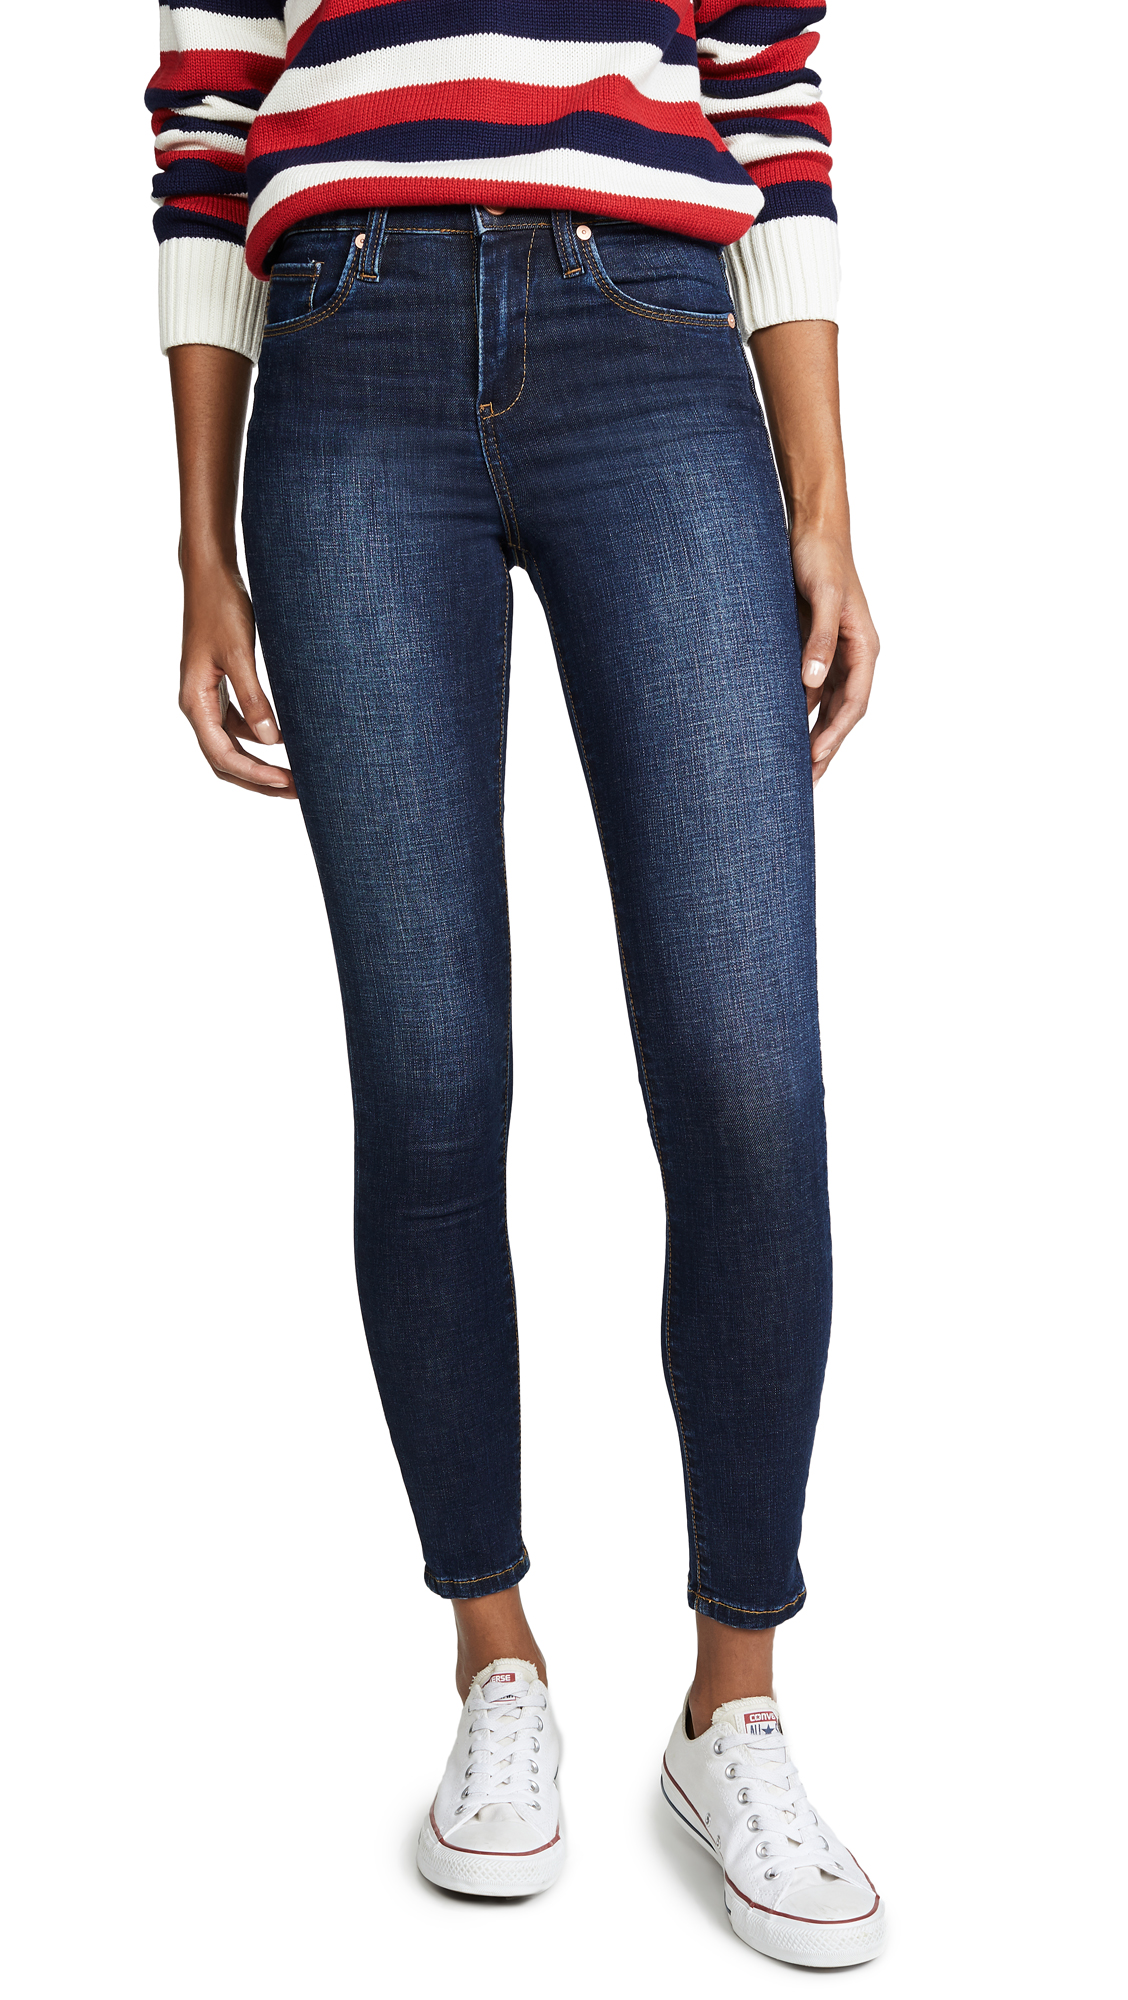 The Great Jones High Rise Skinny Jeans